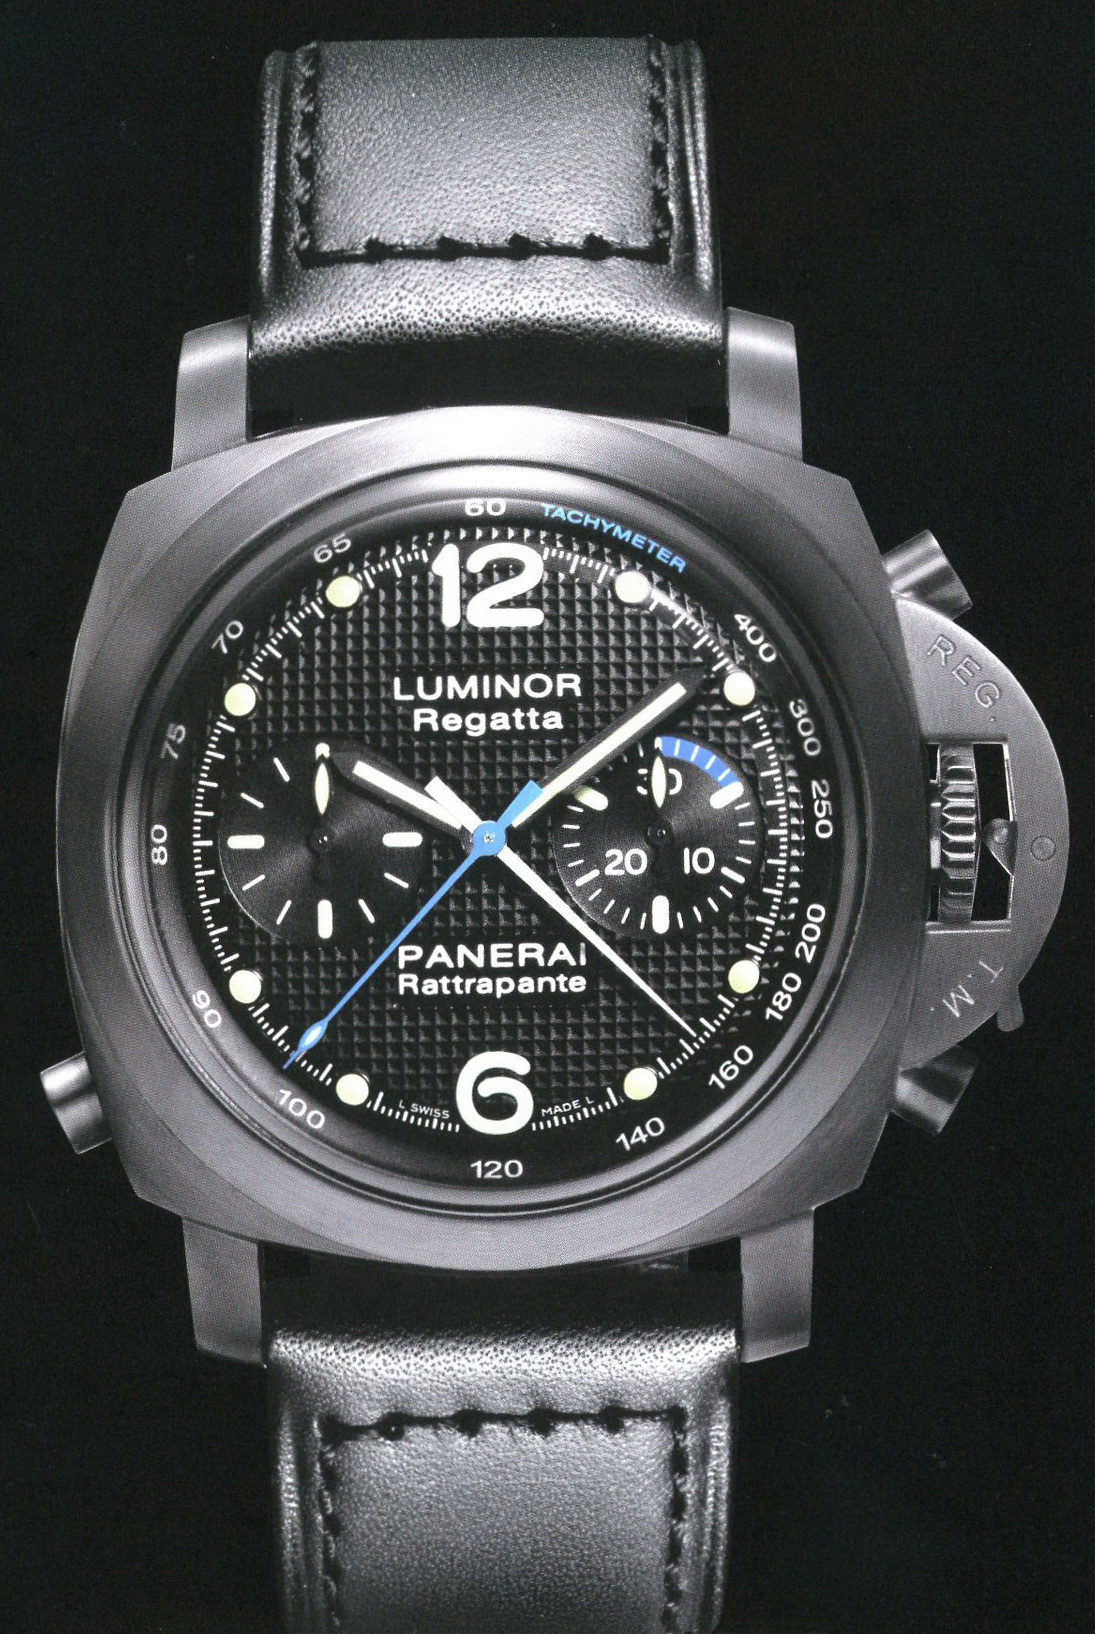 ���� Panerai 2009 Special Edition Luminor 1950 Regatta Rattrapante